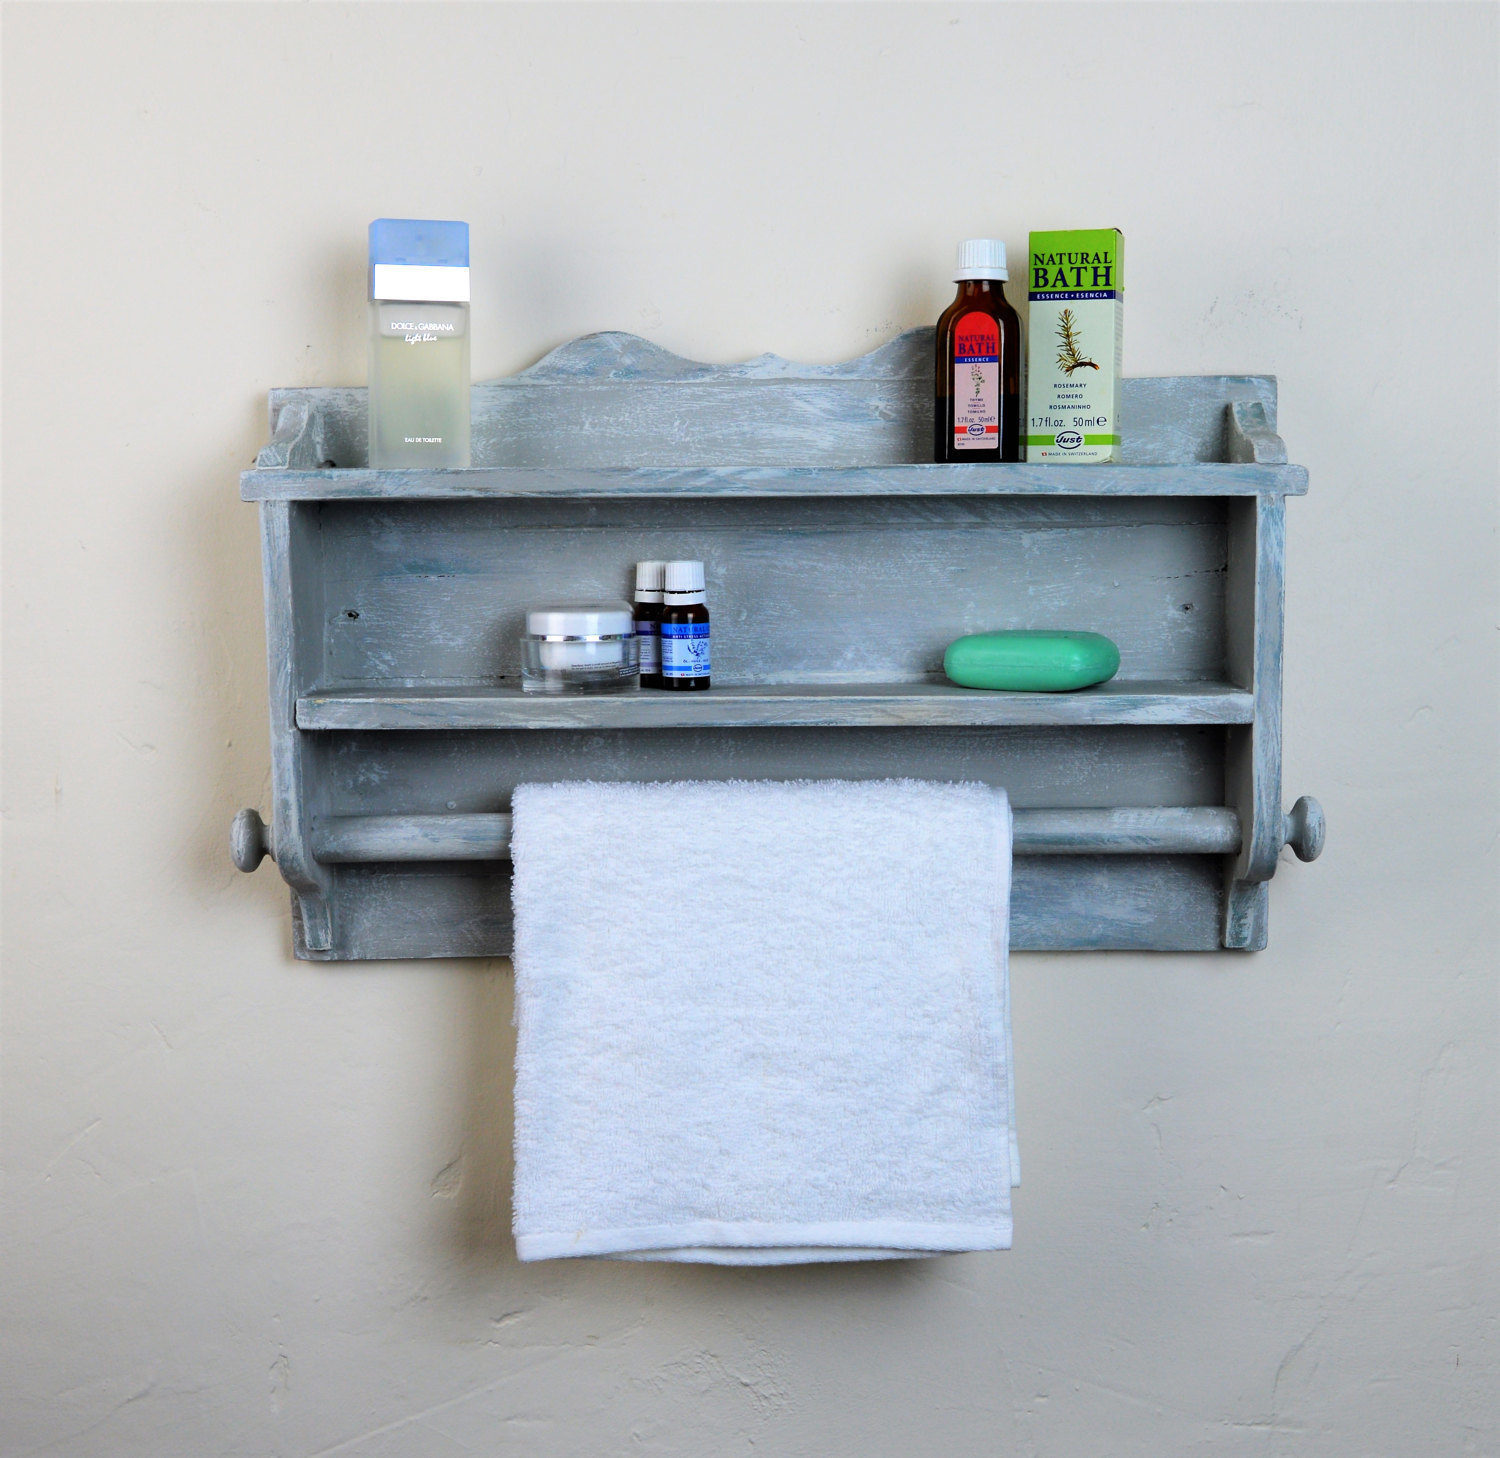 Wooden Towel Rail Bathroom Kitchen Shelves Handmade Annie Sloan Chalk Paint Vinterior